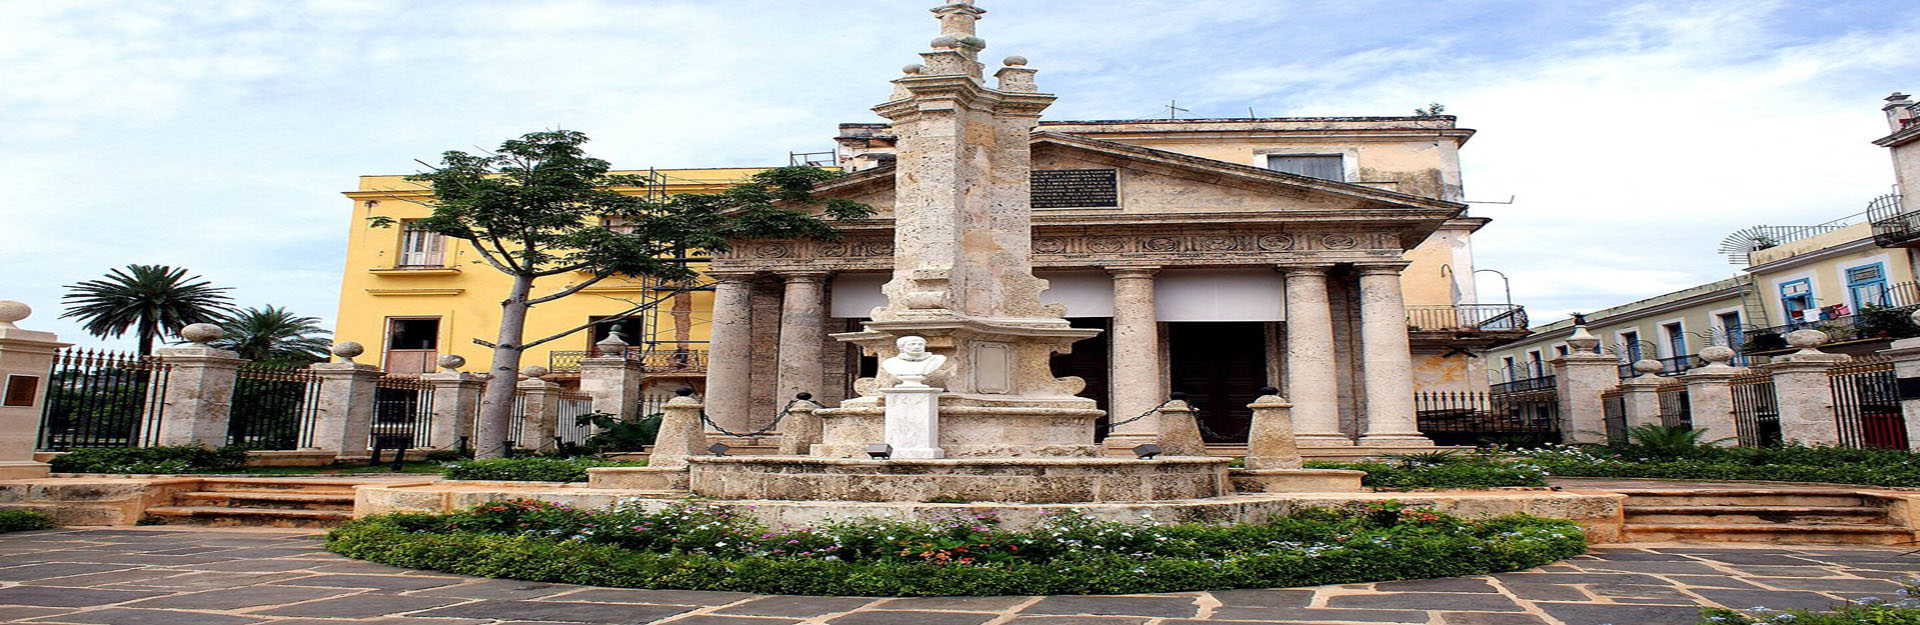 The Templete of Havana, Cuba Travel